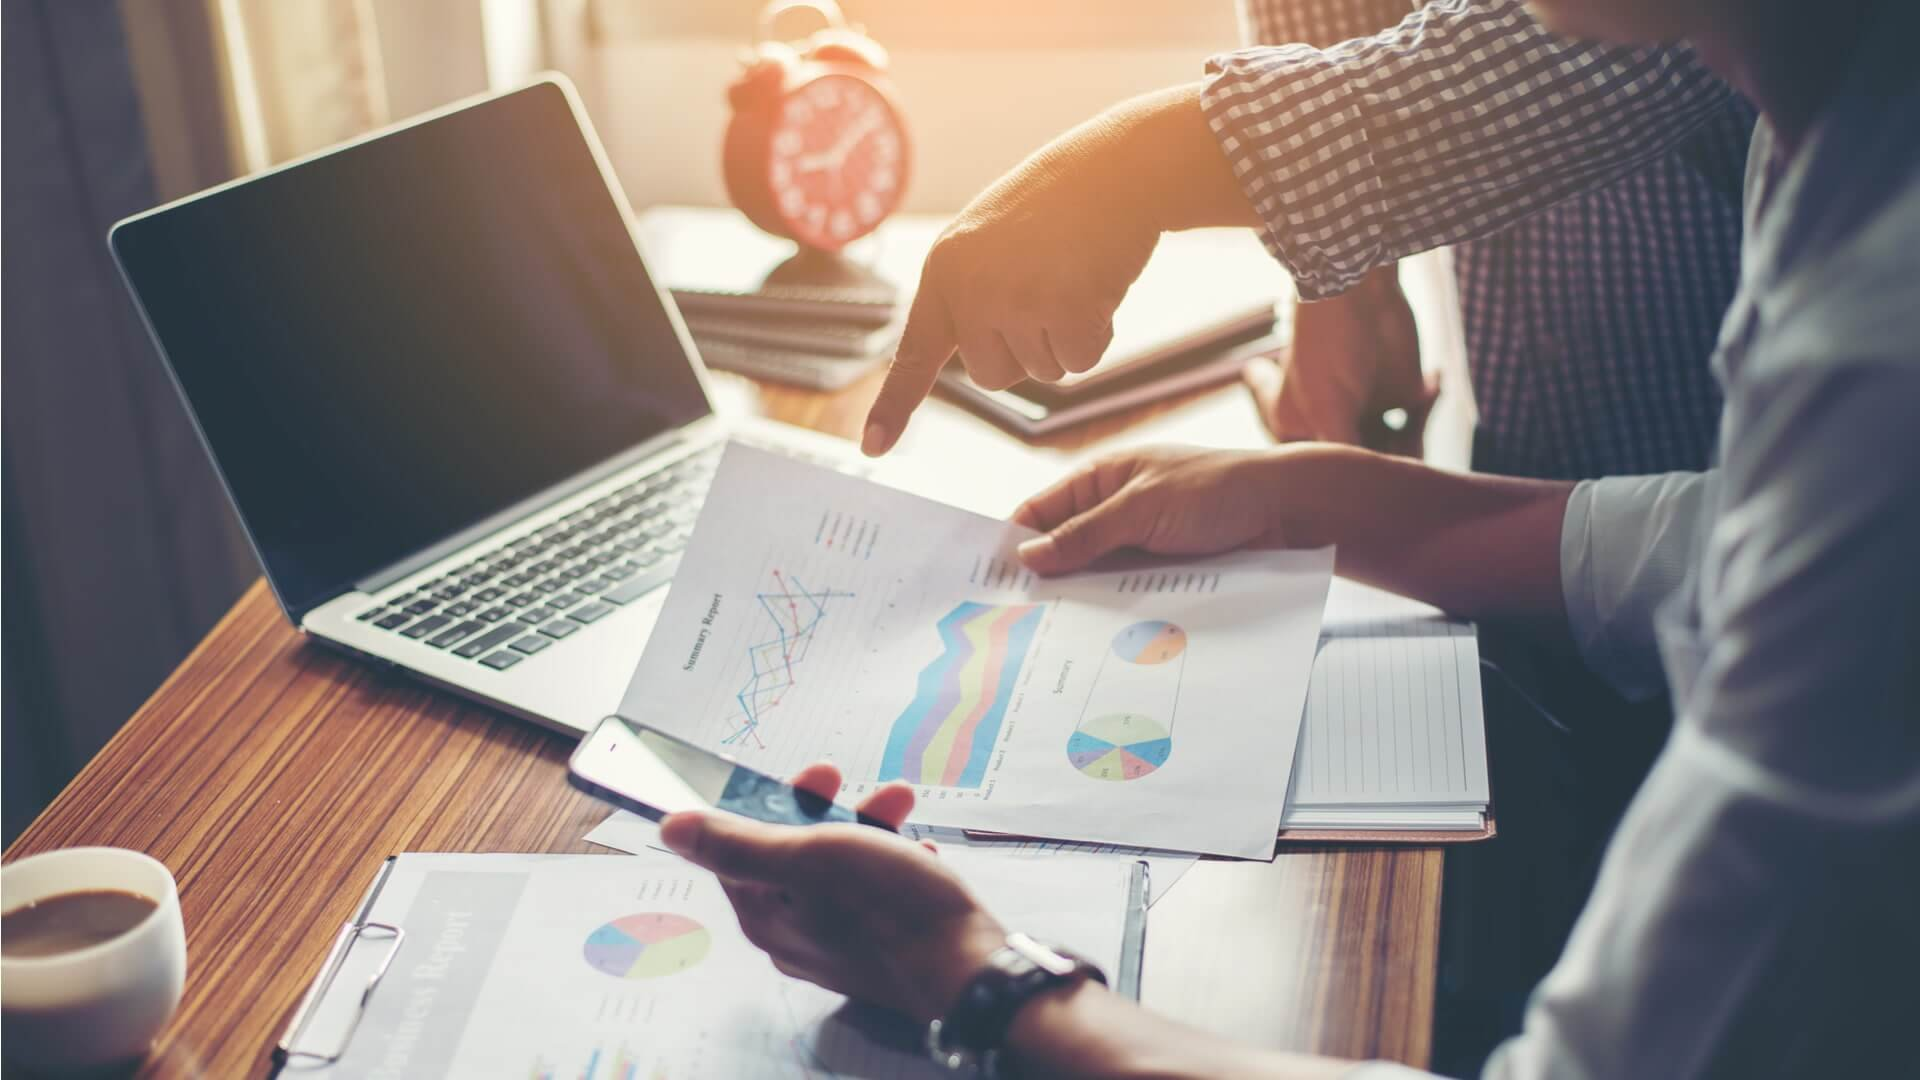 How To Make Investing Part of Your Long-Term Financial Plan